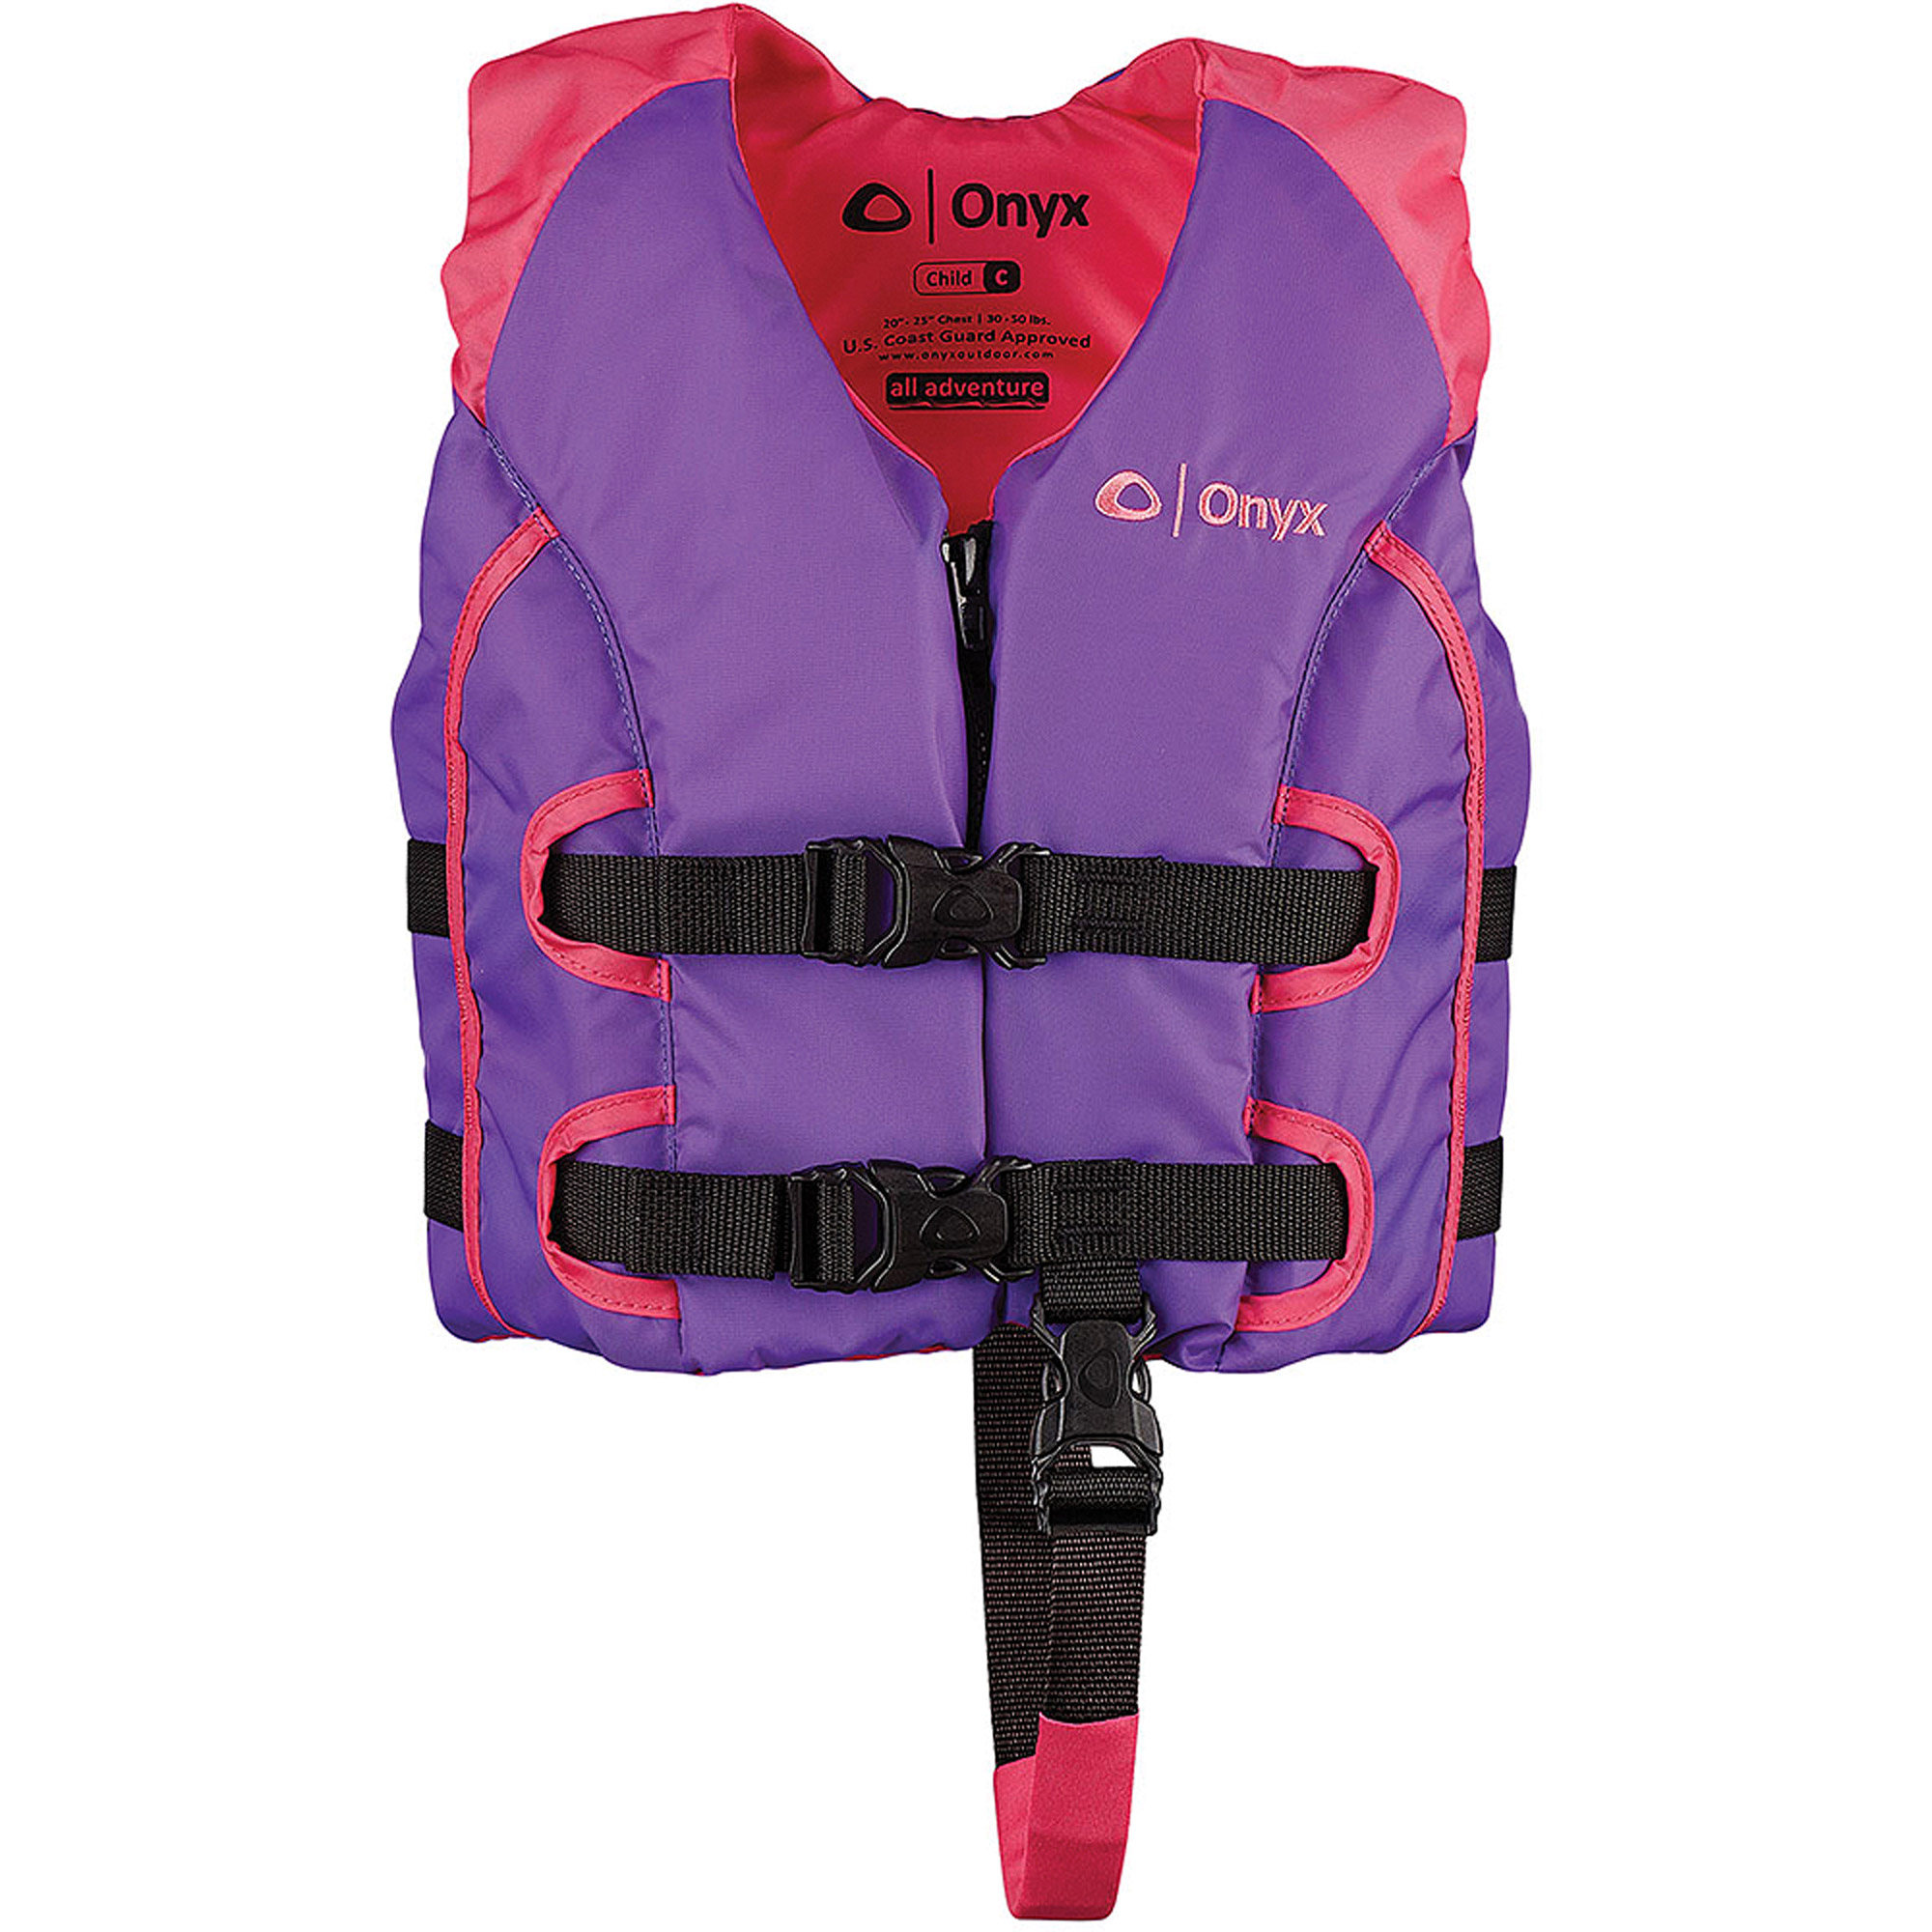 Onyx All Adventure Child Vest Pink Purple by Onyx Outdoor